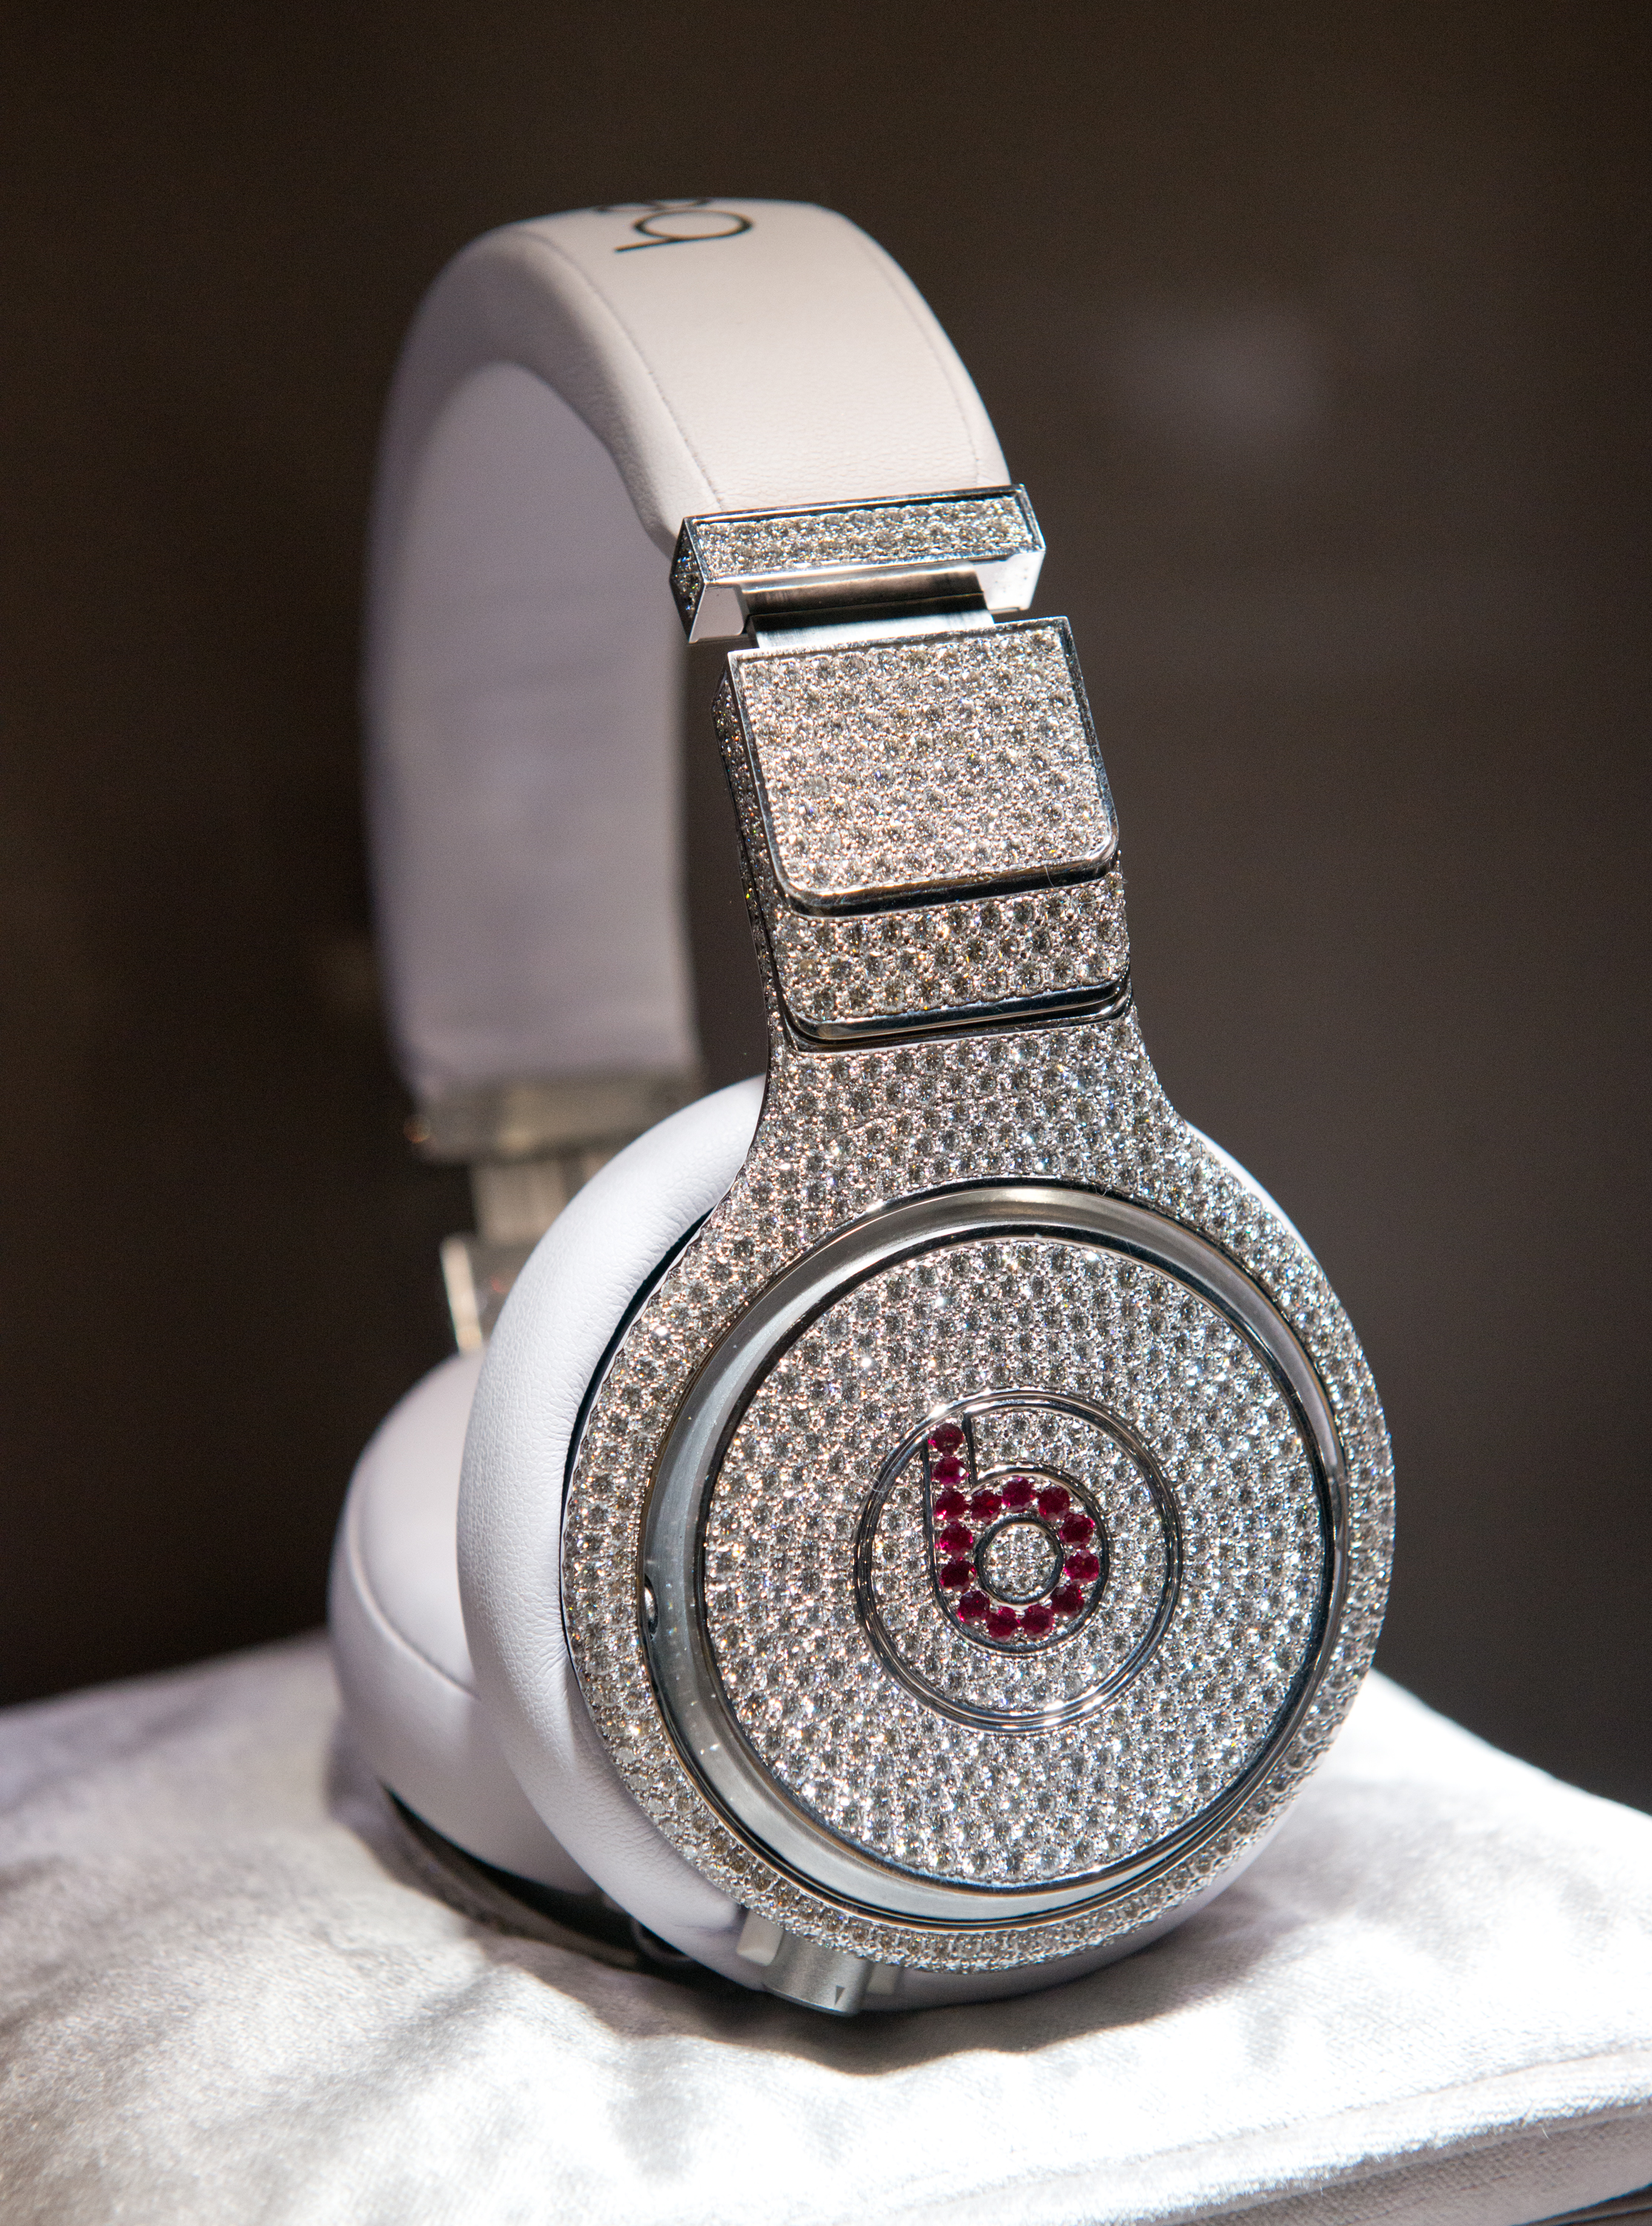 The Million Dollar Headphones by Beats by Dr. Dre &  Graff Diamonds, displayed on January 31, 2014 in New York City.